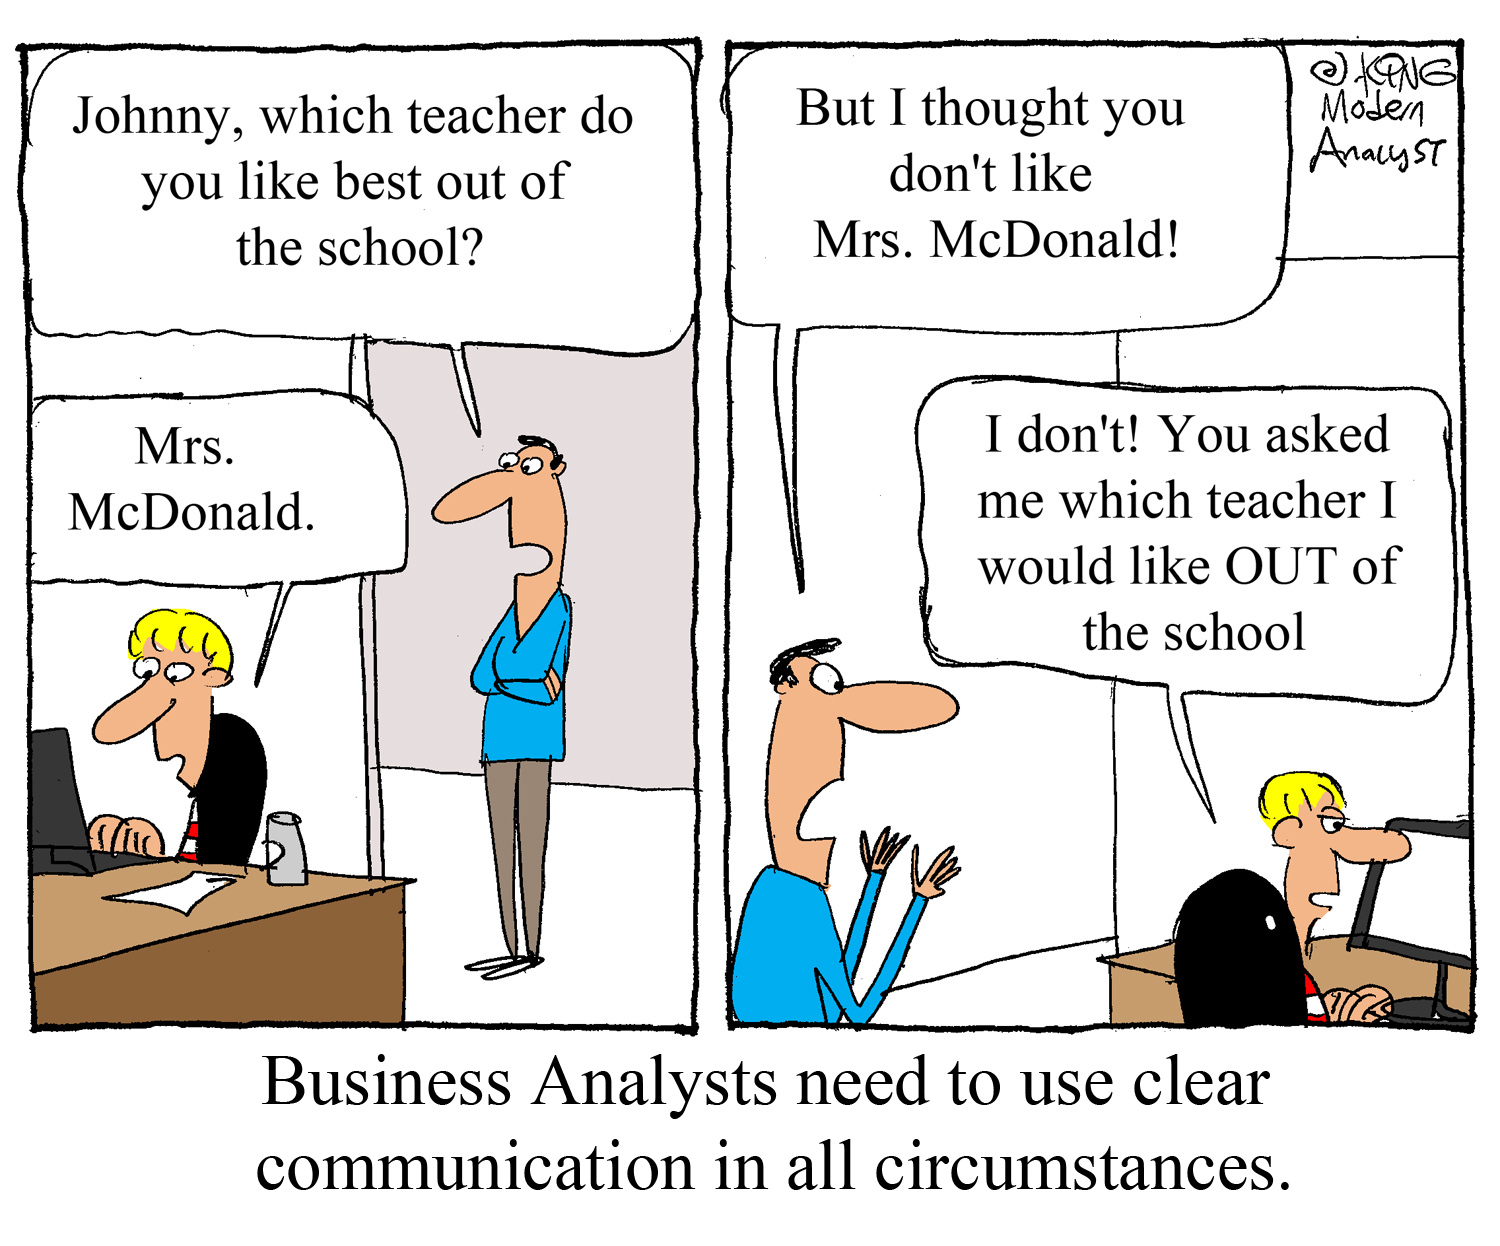 Humor - Cartoon: Business Analysts Need to Use Clear Communication - Always